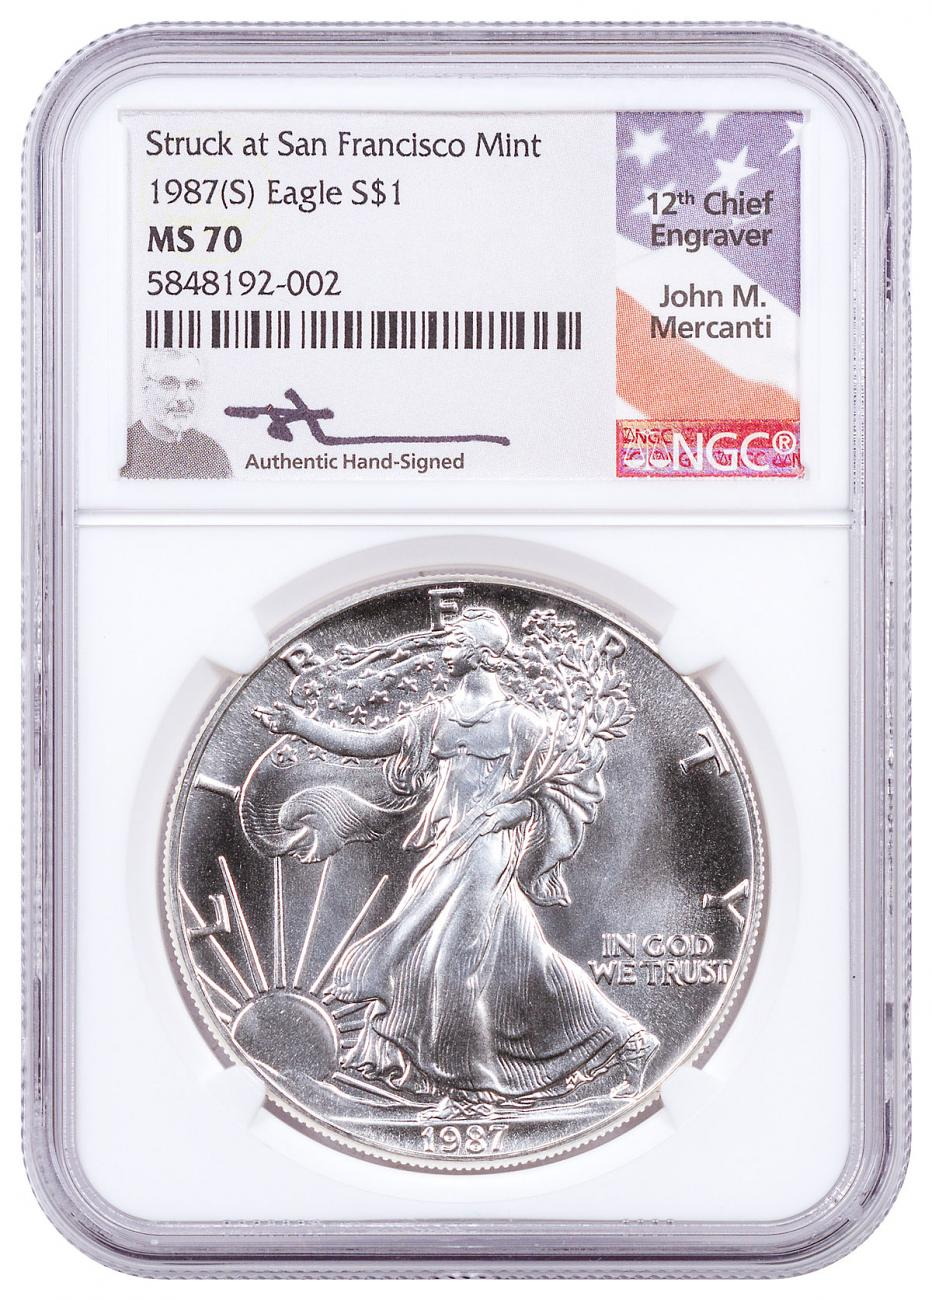 1987-(S) American Silver Eagle Struck at San Francisco Mint NGC MS70 Mercanti Signed Flag Label